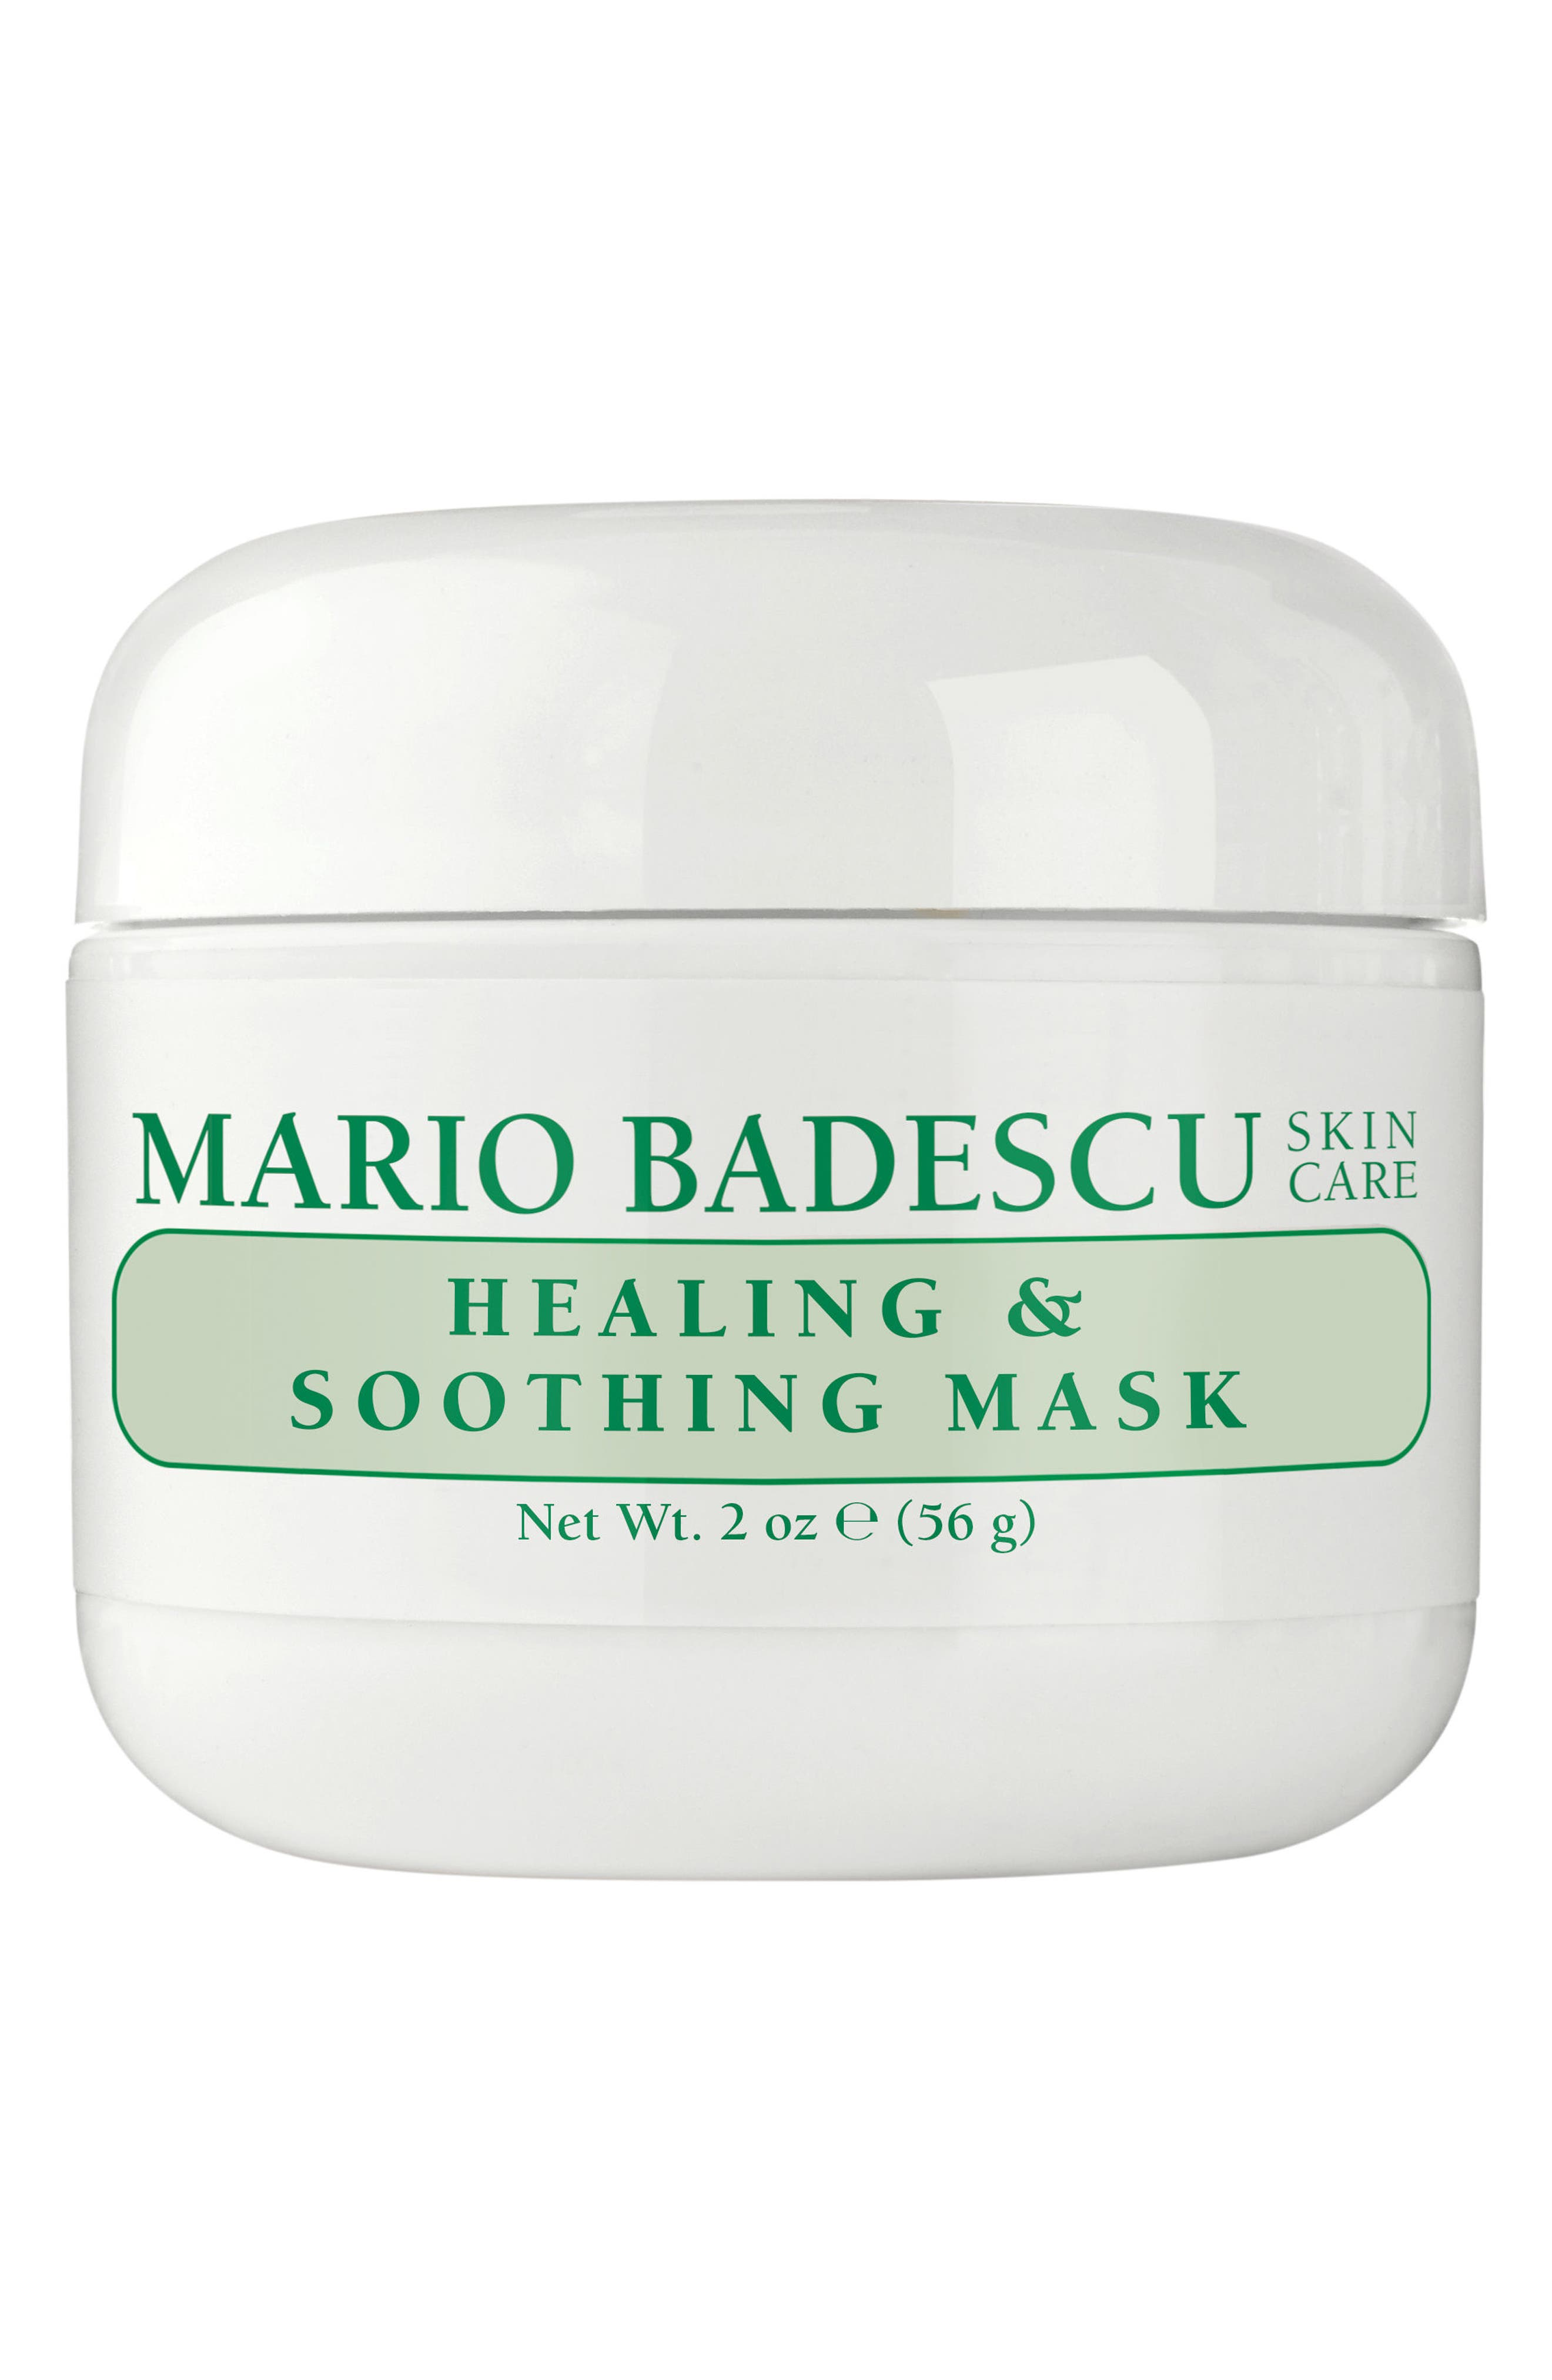 Healing & Soothing Mask,                             Alternate thumbnail 2, color,                             NO COLOR